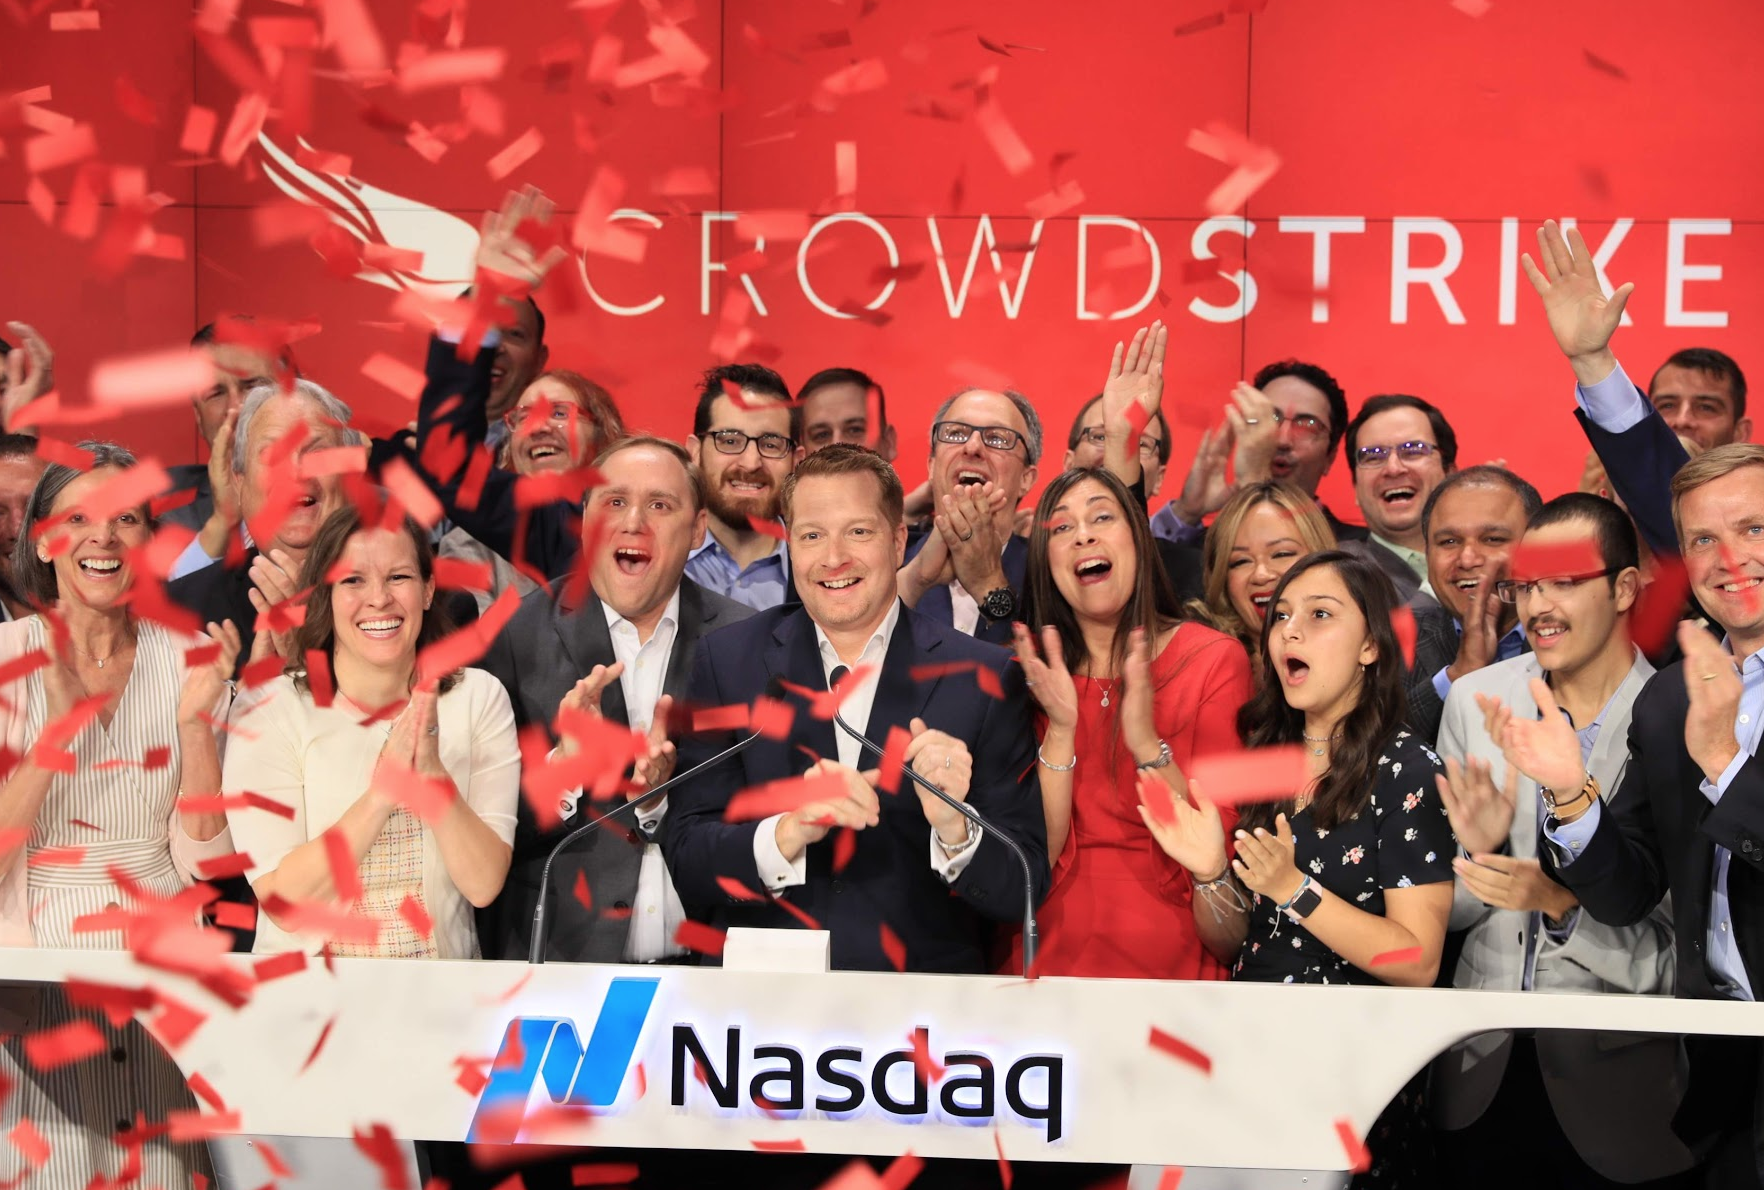 CrowdStrike celebrates its initial public offering at the Nasdaq stock exchange in New York City.